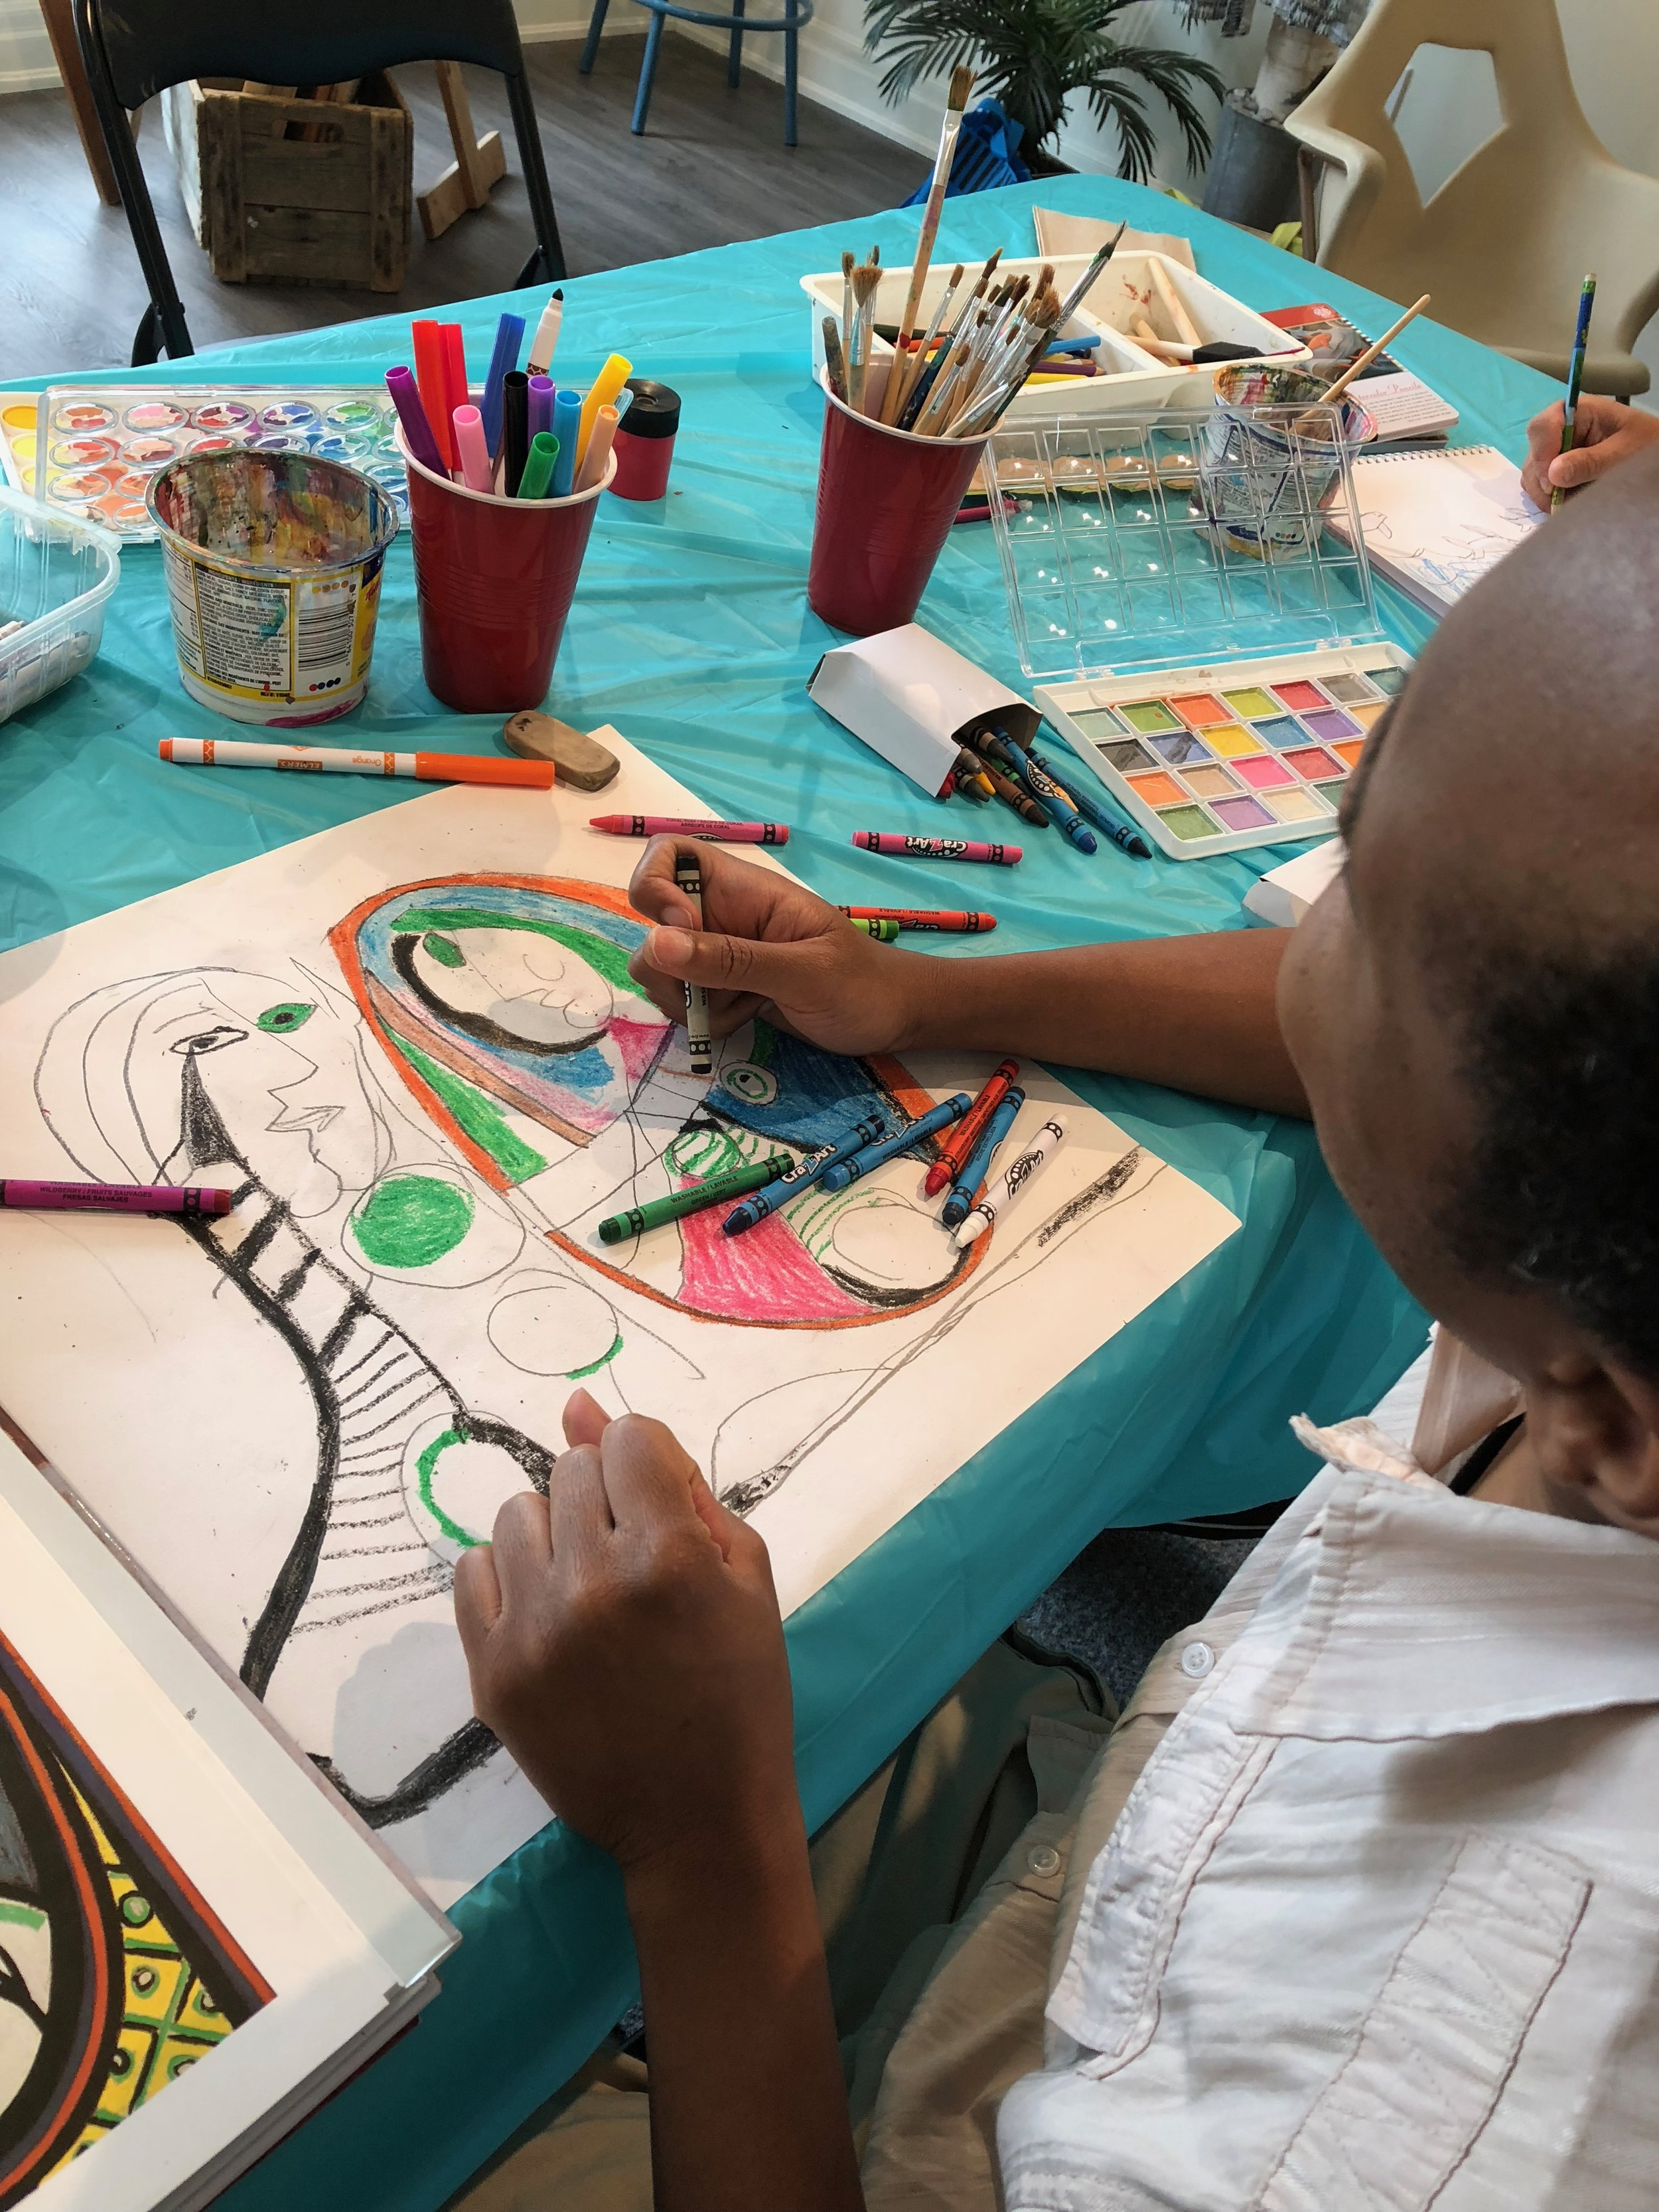 The studio offers art classes to special needs adults in partnership with Community Living.